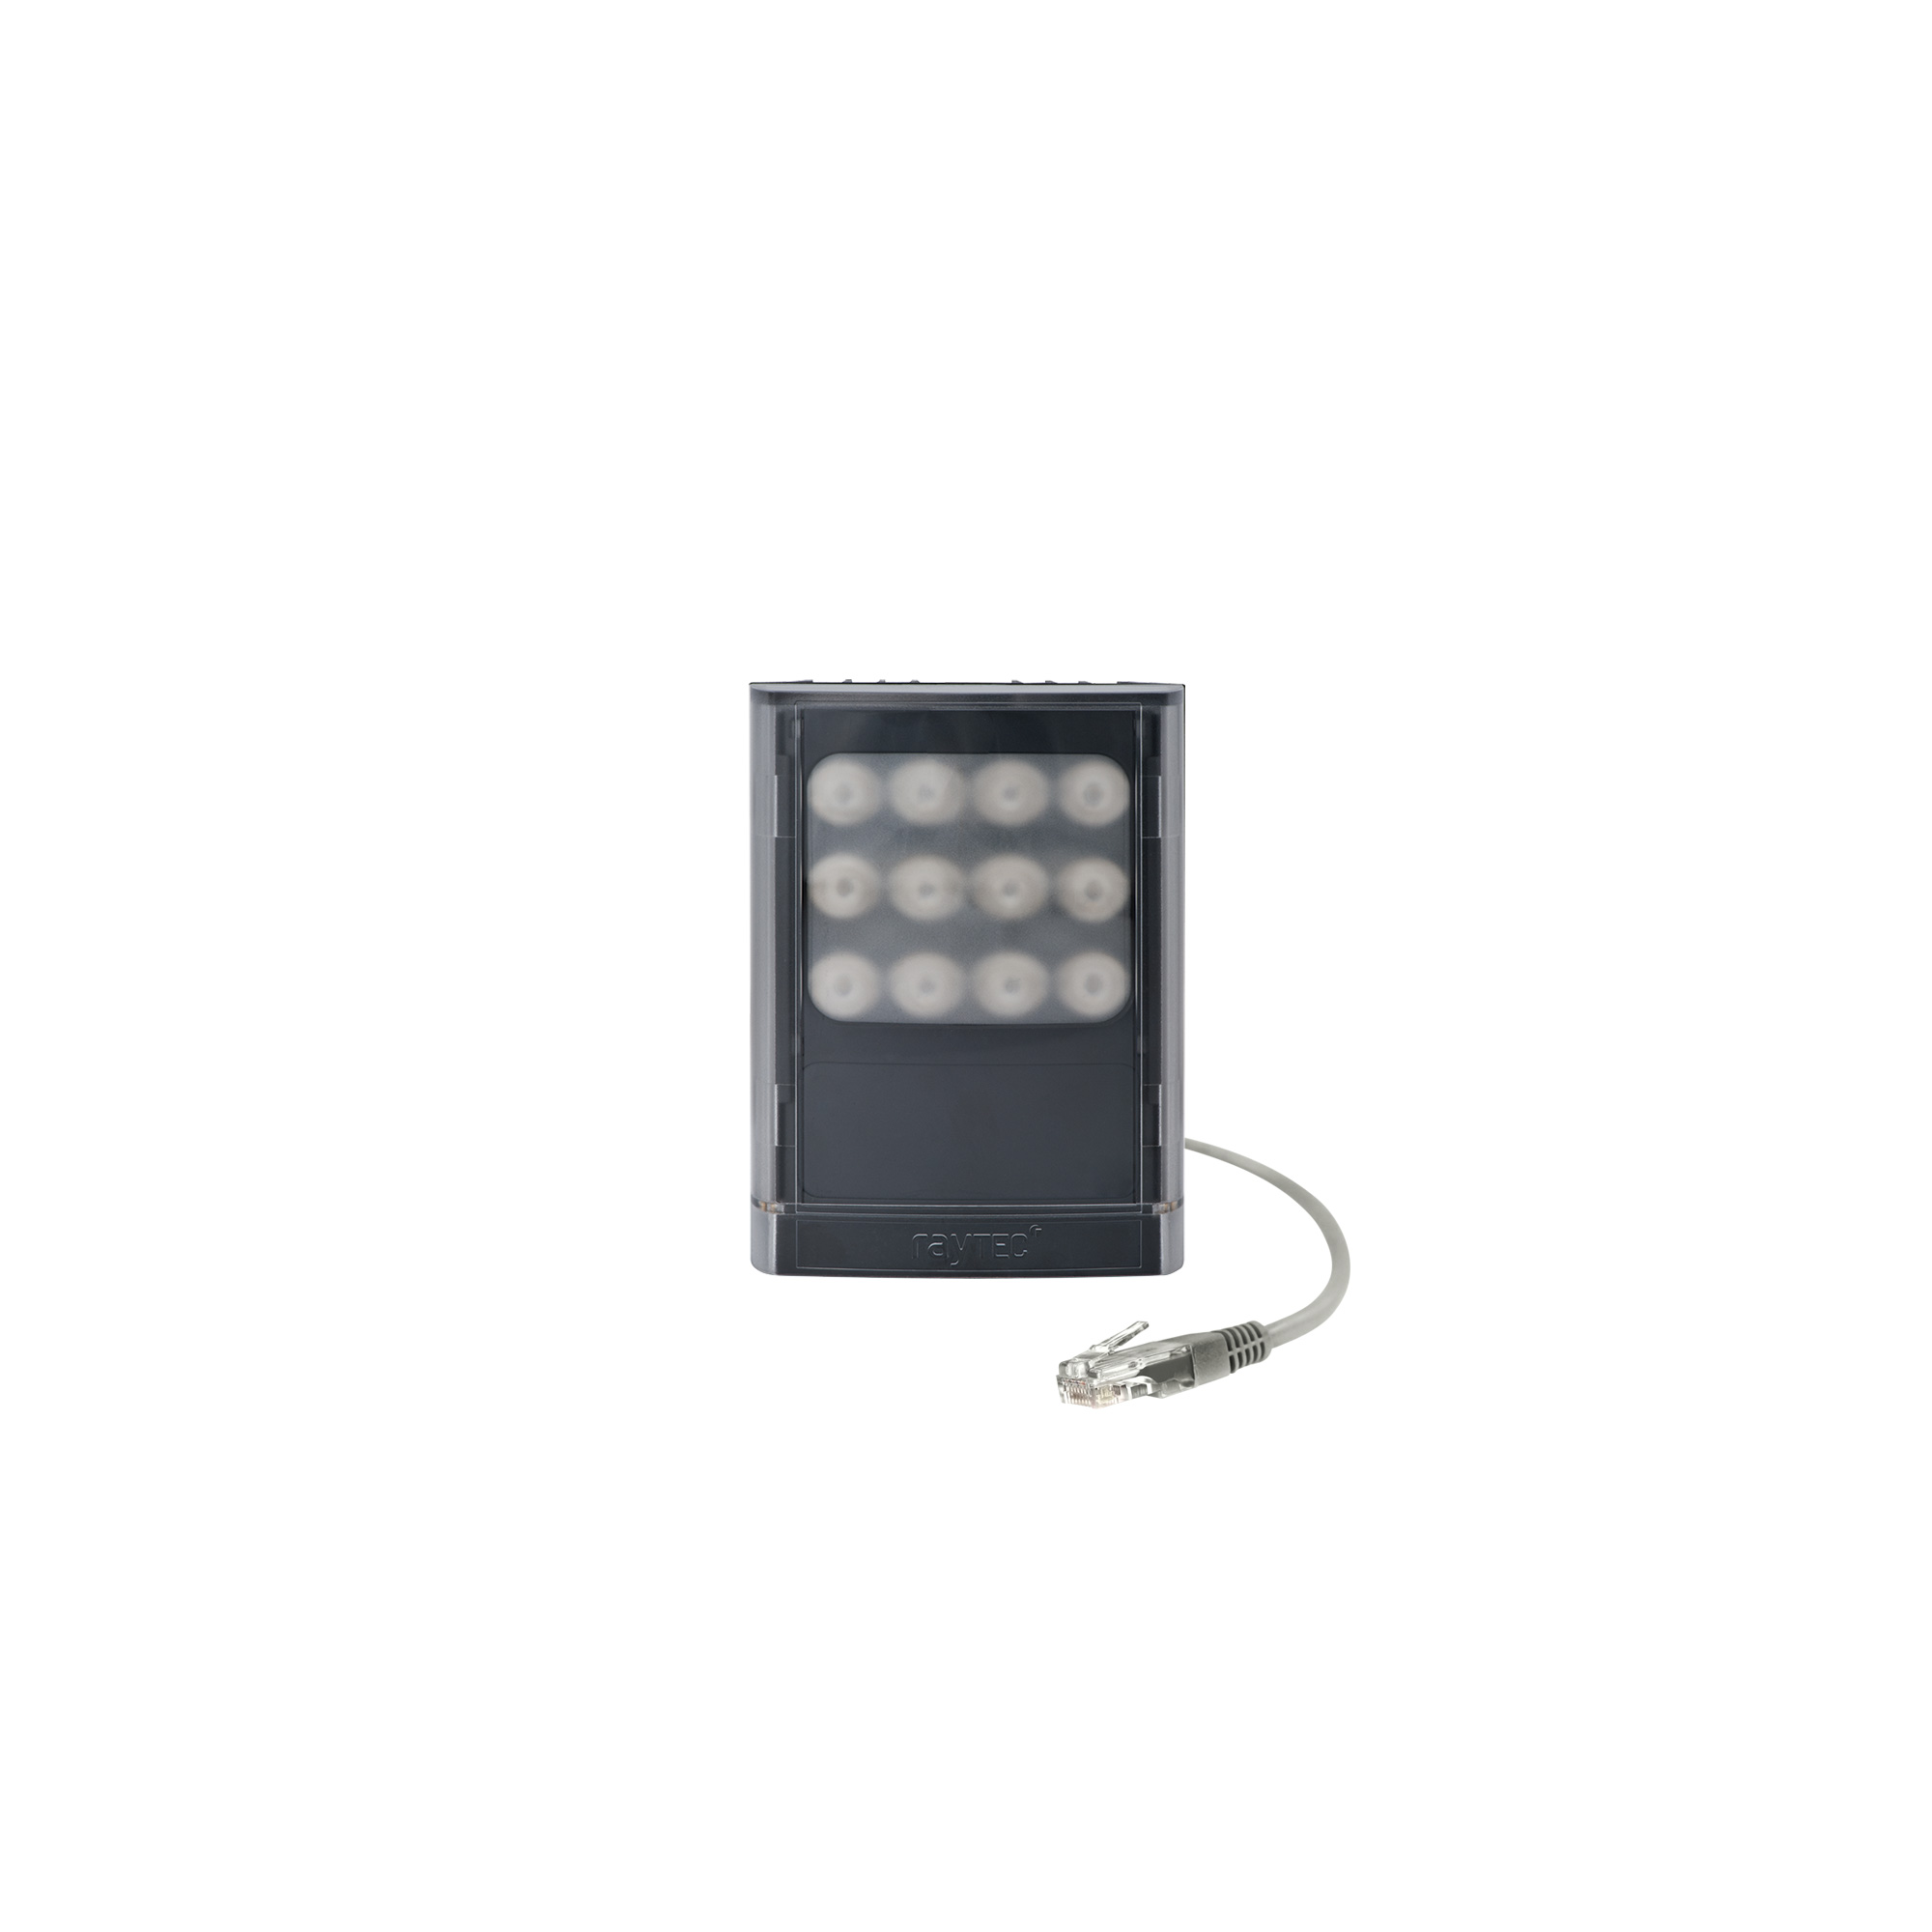 VAR2-IPPoE-i6-1 Long Range Infra-Red Network Illuminator